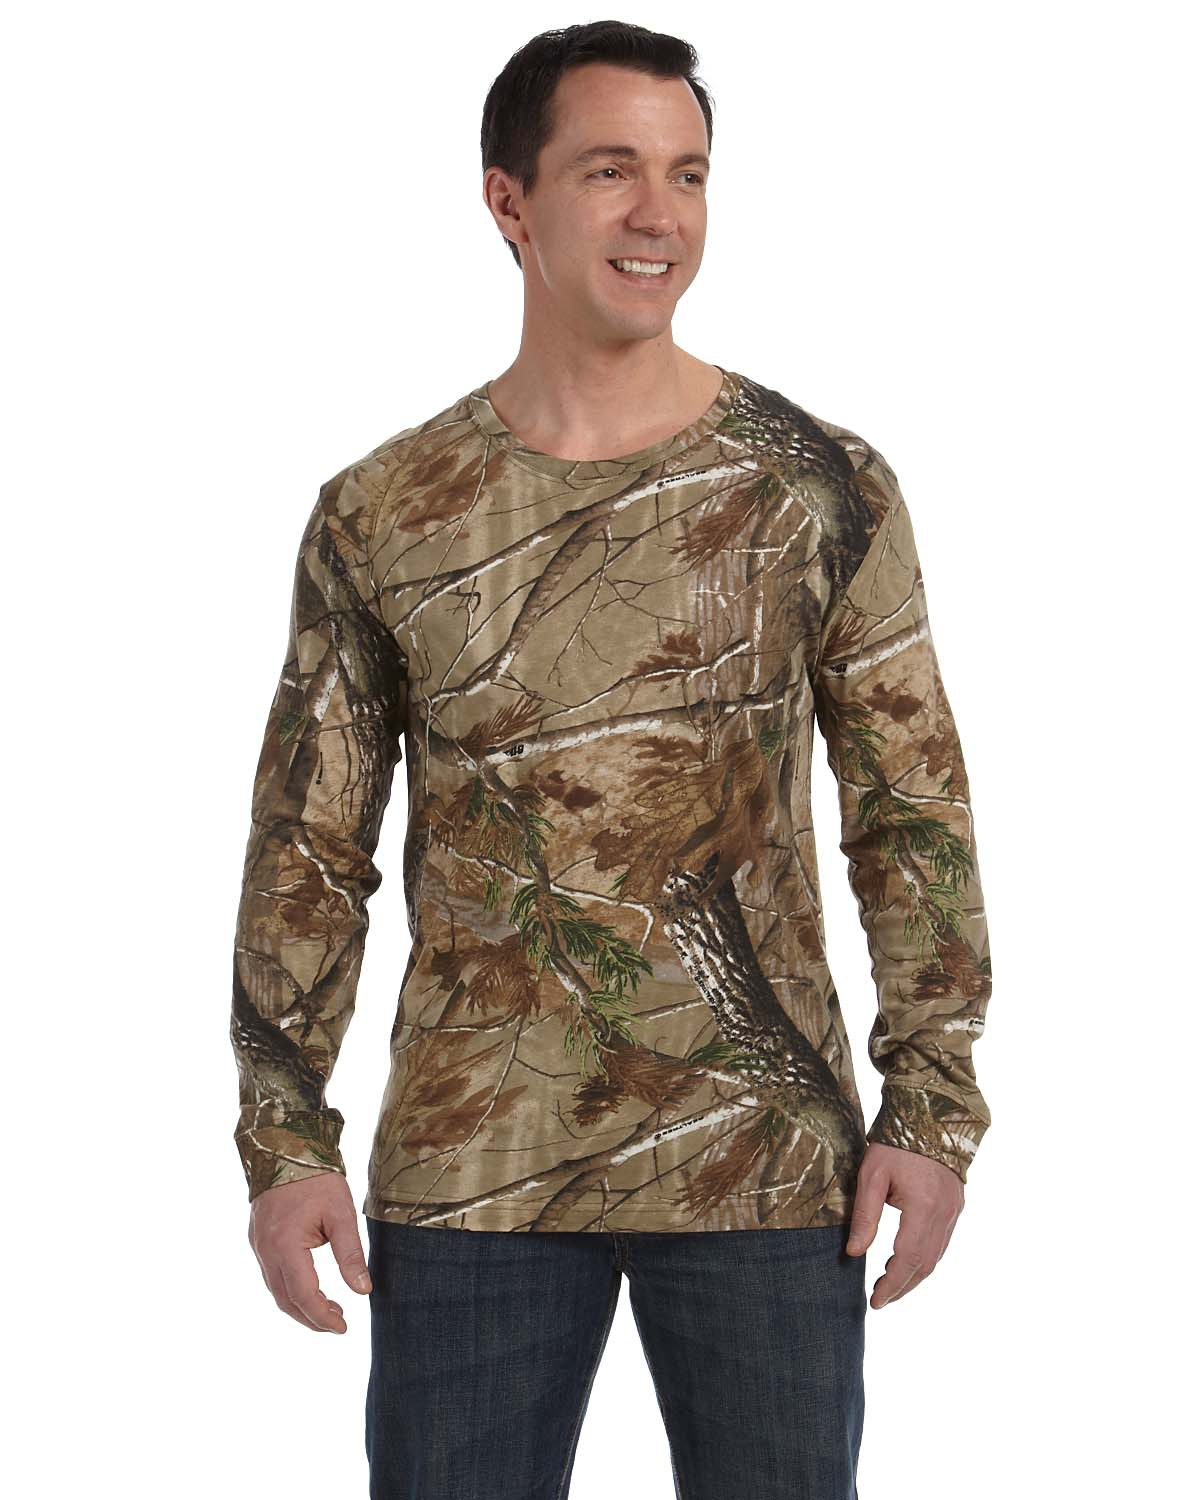 Code V 3981 - Camouflage Long Sleeve T-Shirt